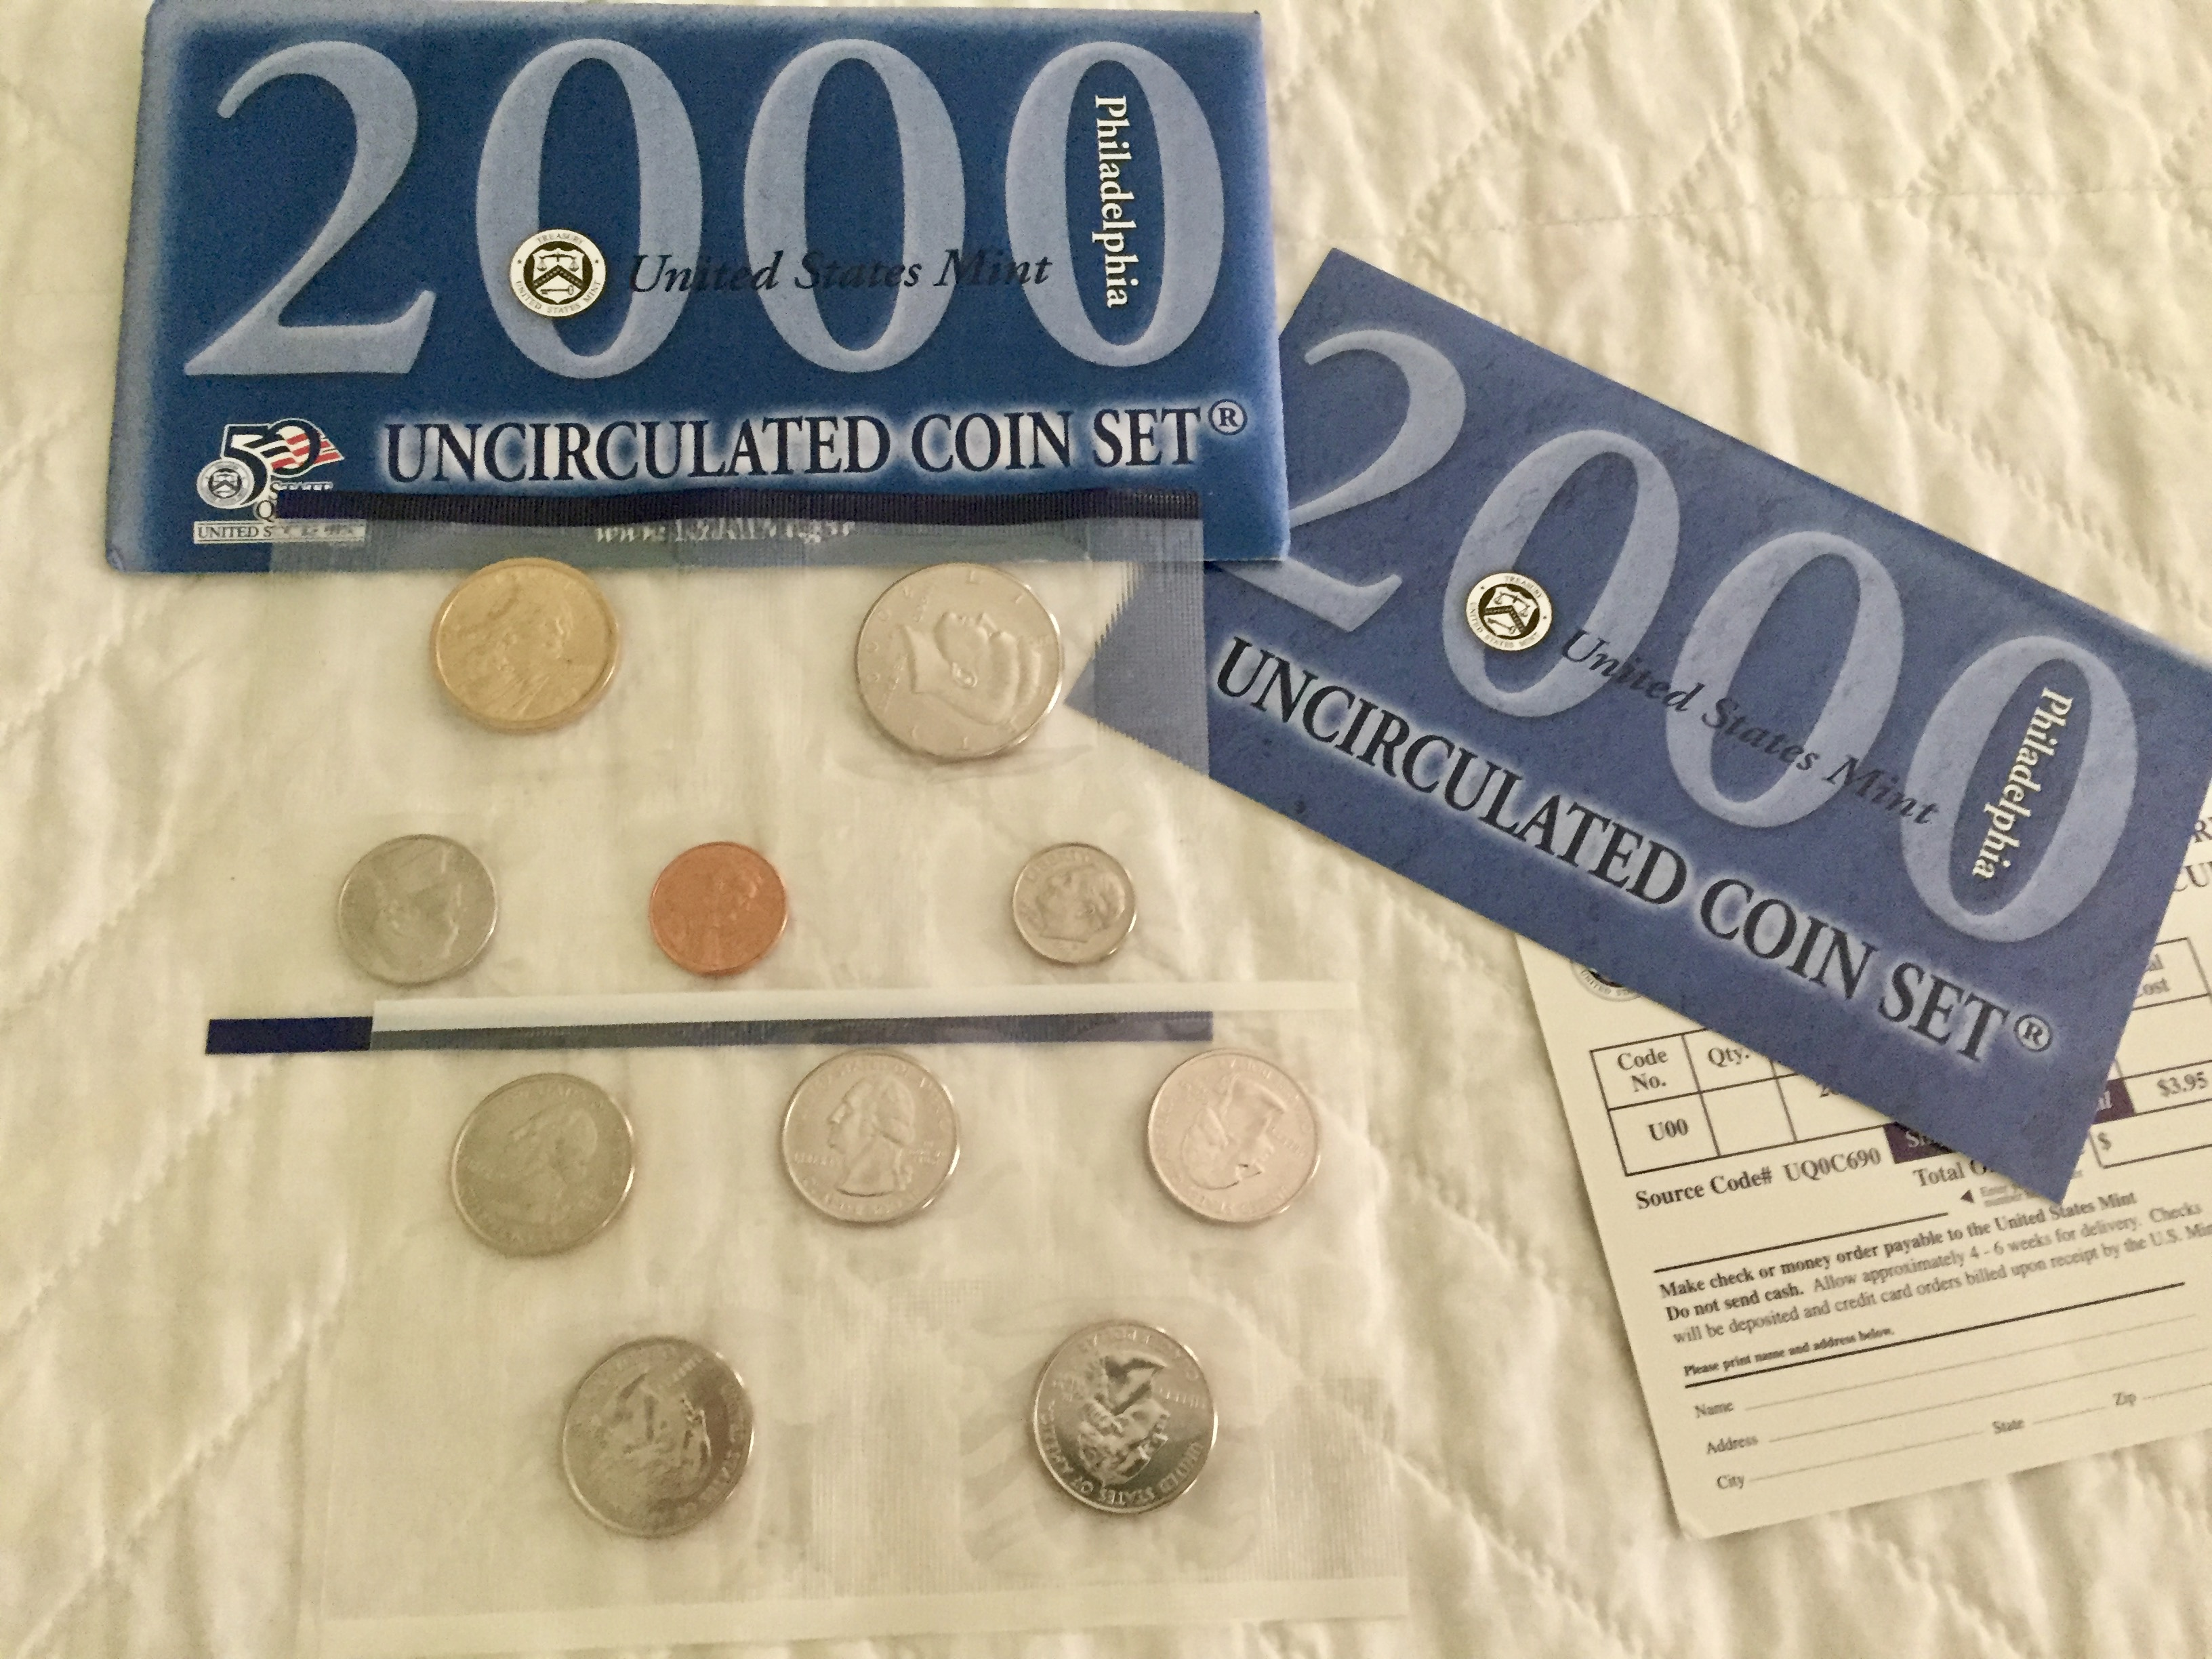 Item HG 20 - 2000 US Uncirculated Coin Set - Philadelphia Mint - Wow